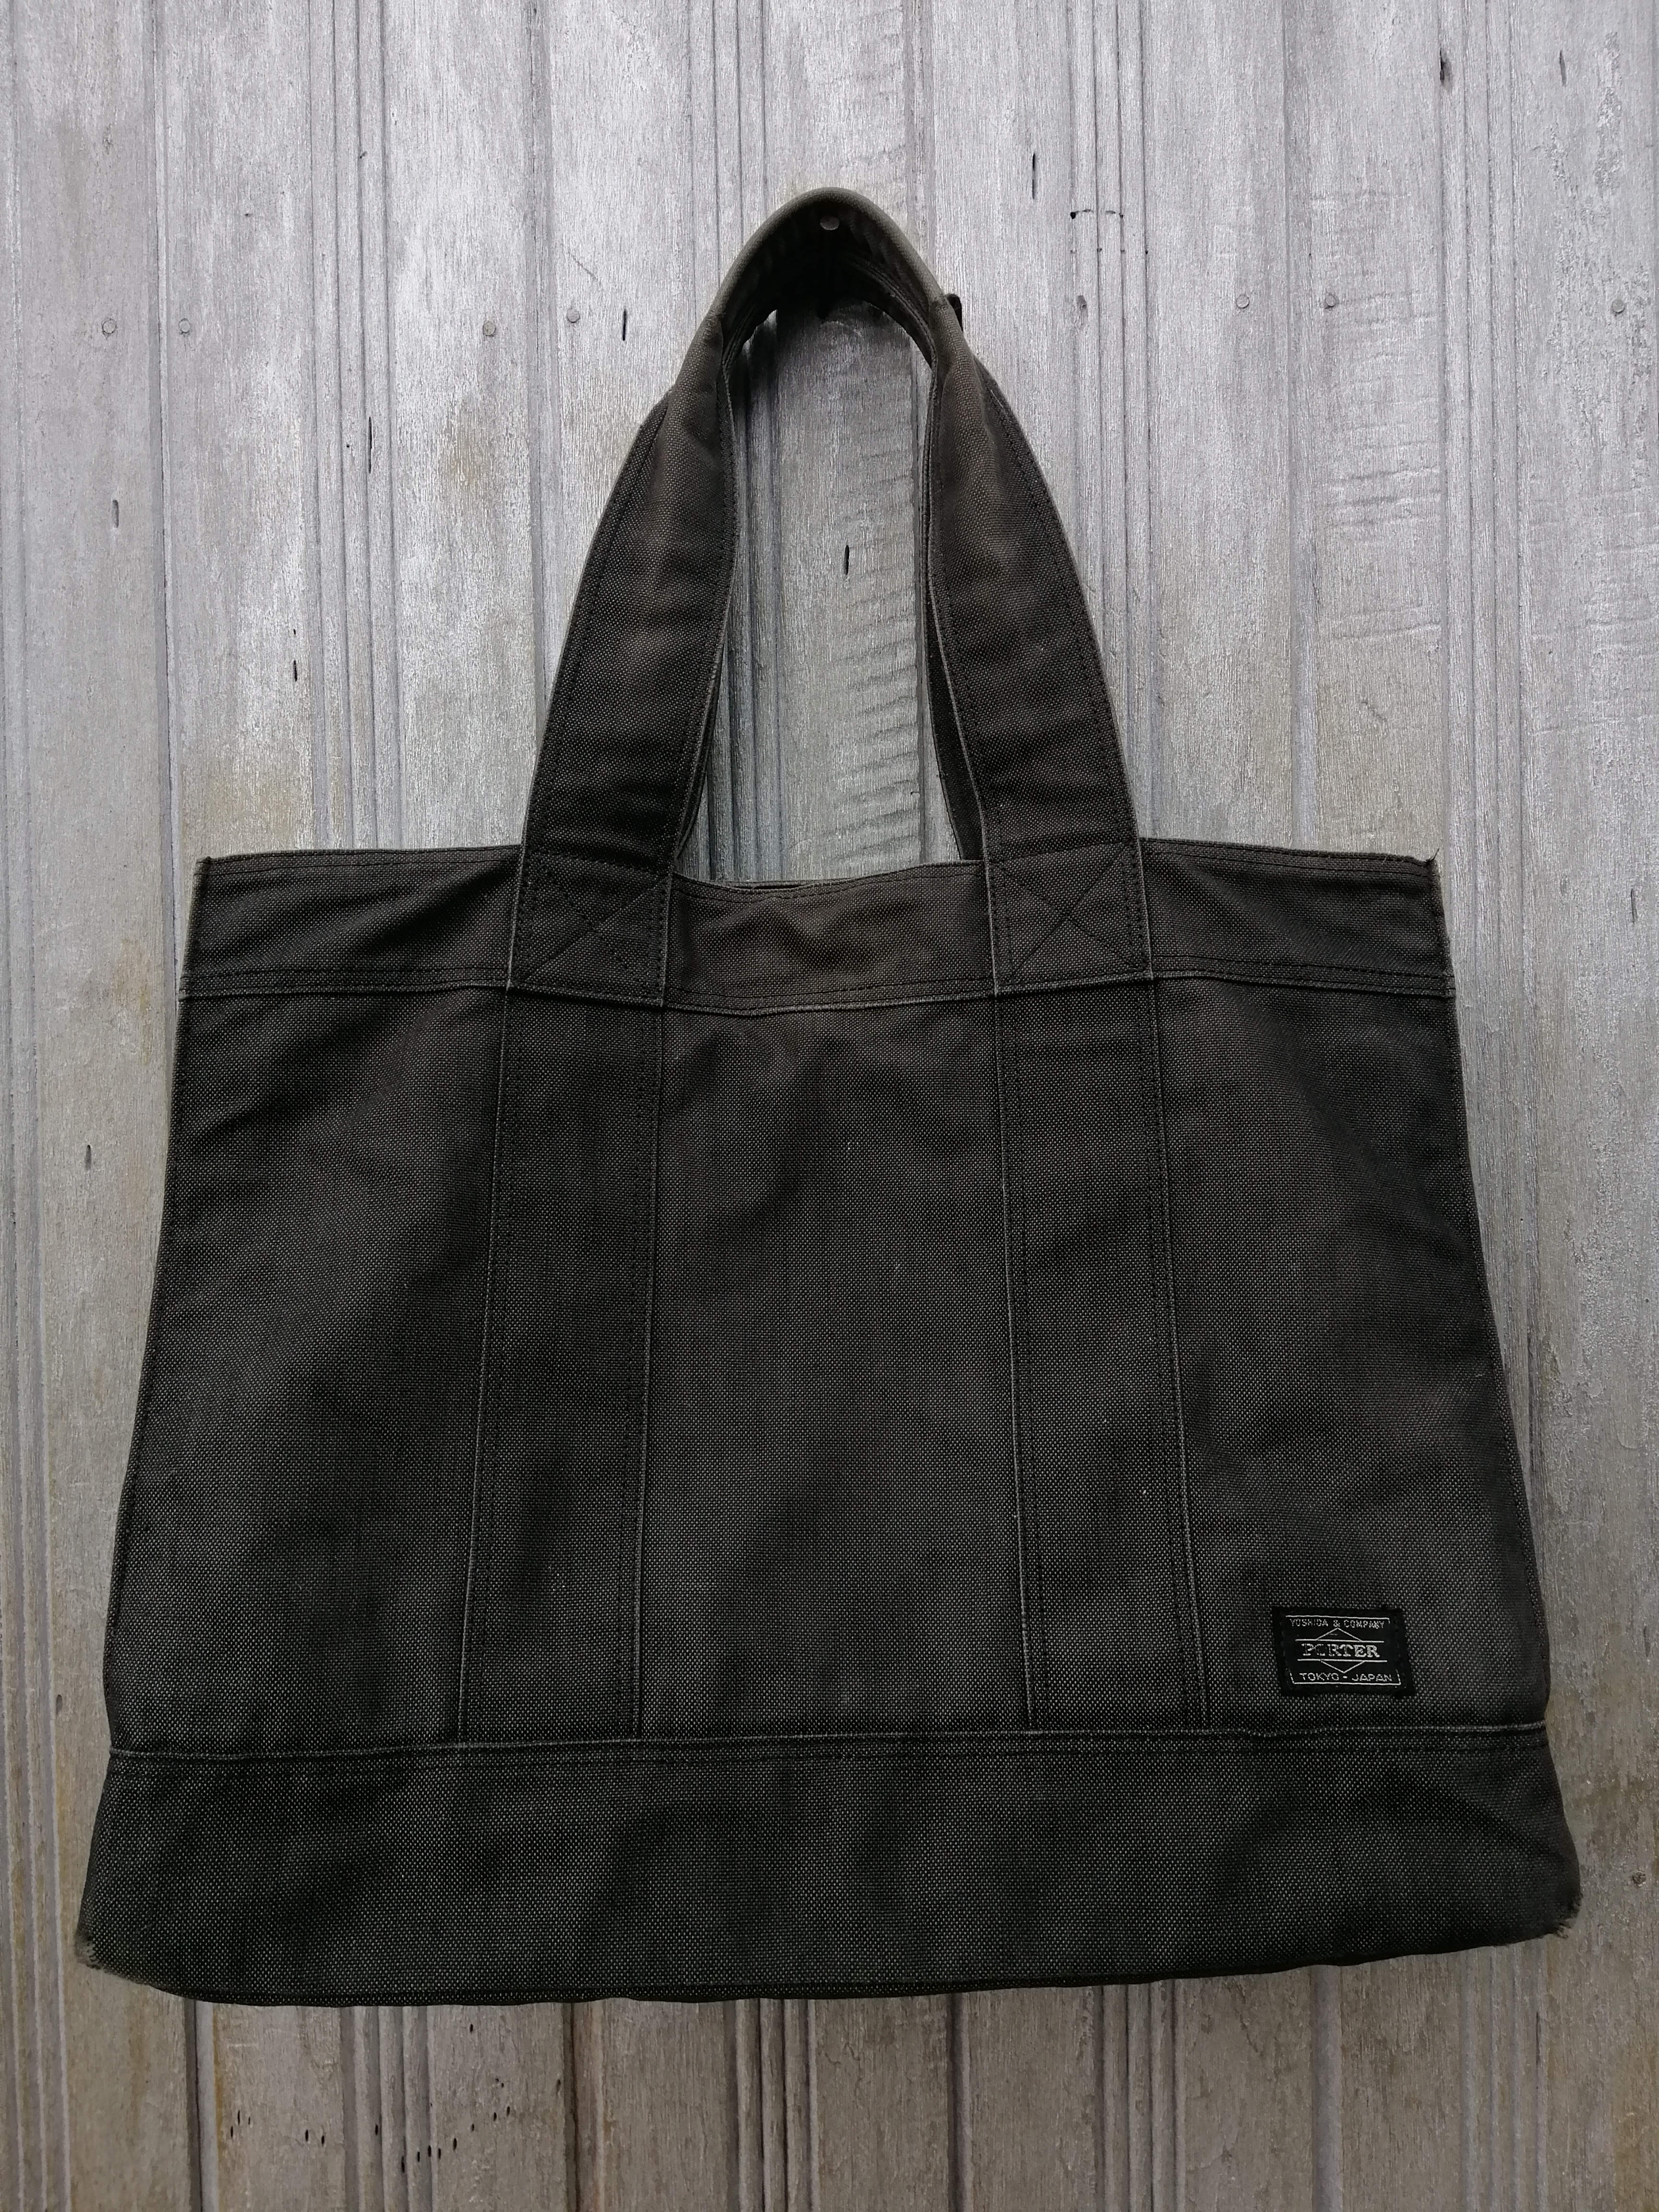 88f5ce35fbb Porter tote bag canvas made in japan